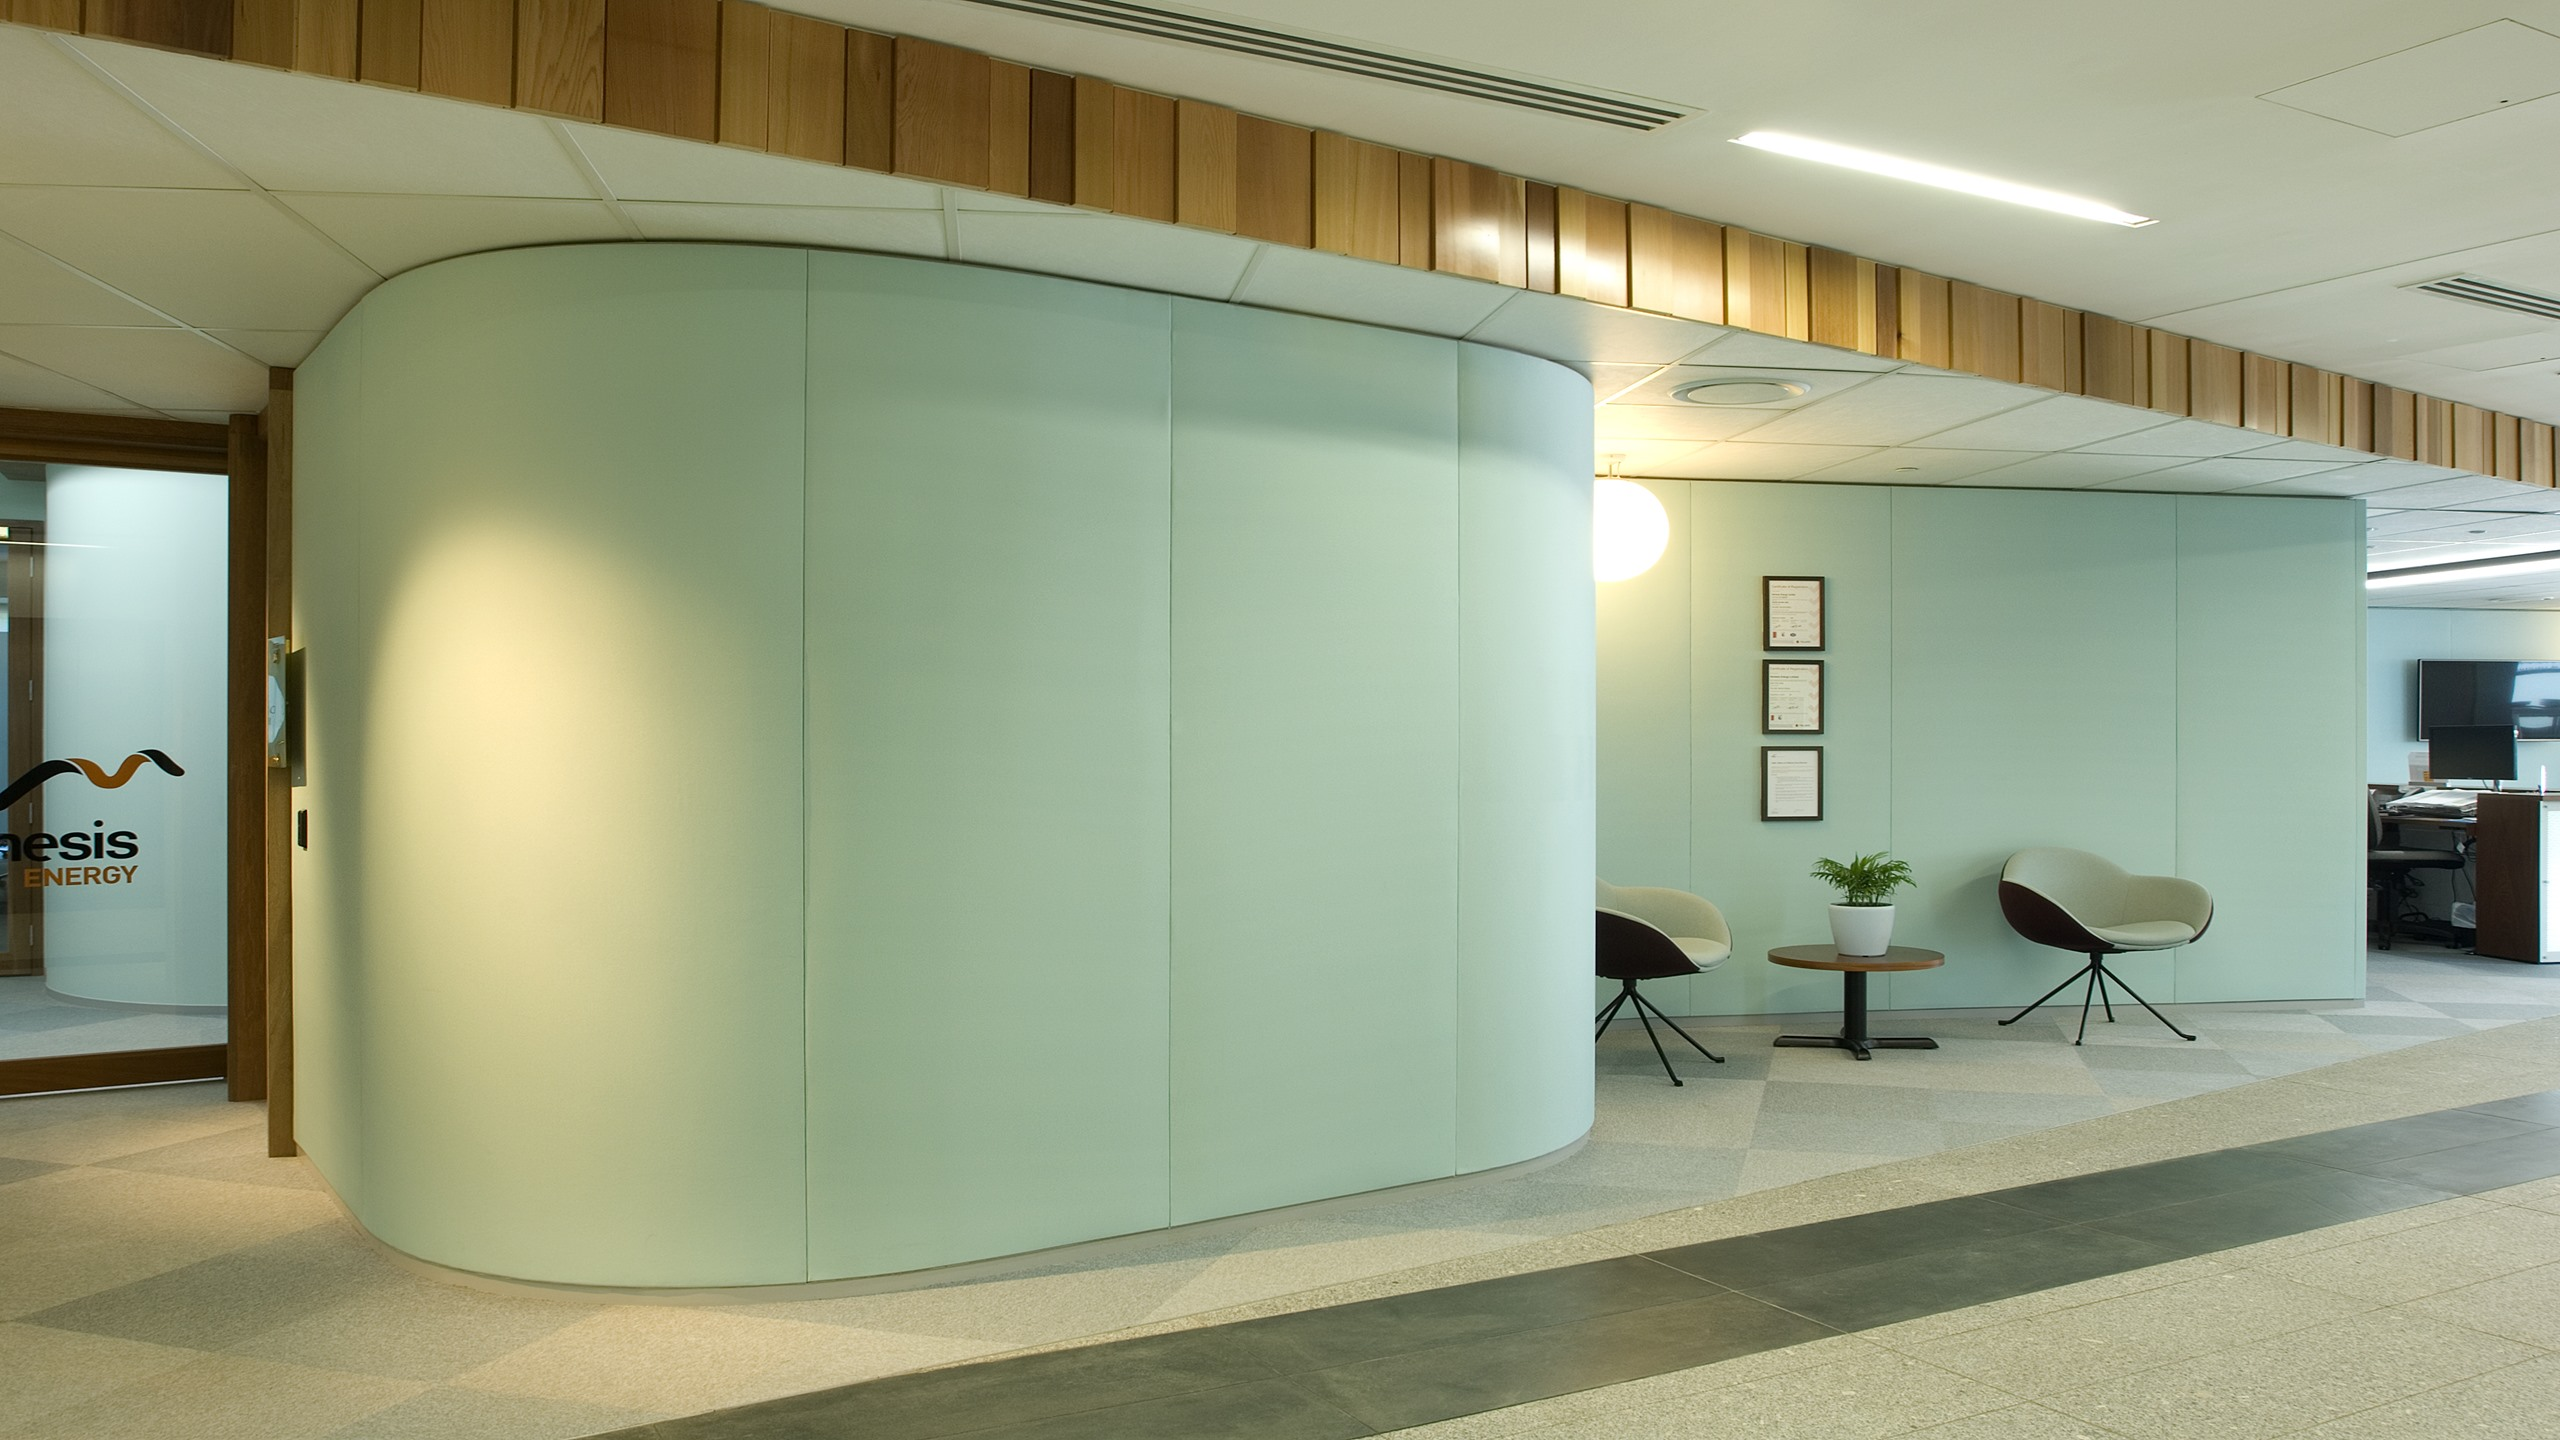 Genesis Energy - Curved Snaptex Walls